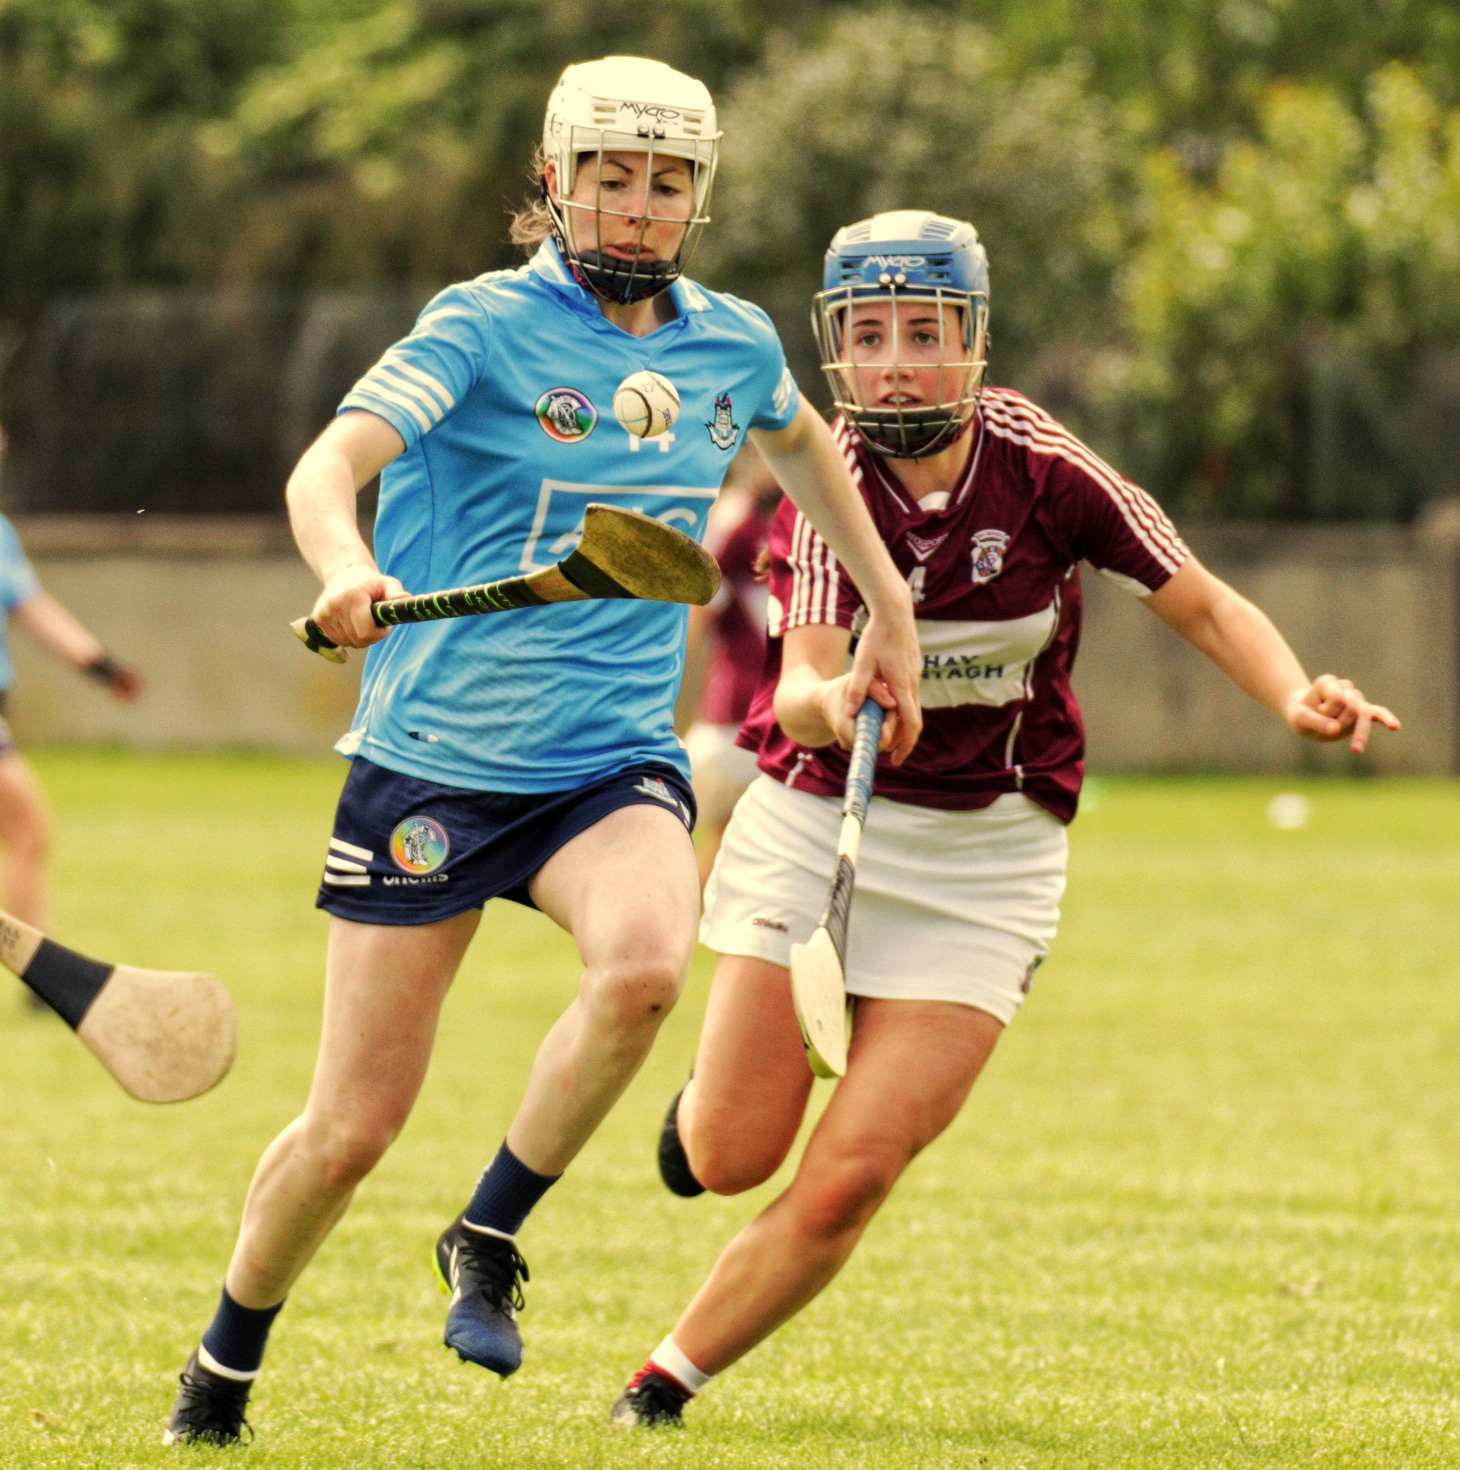 Dublin's Siobhan Kehoe in action against Westmeath, Kehoe was blatantly fouled in the square but didn't get the penalty decision.